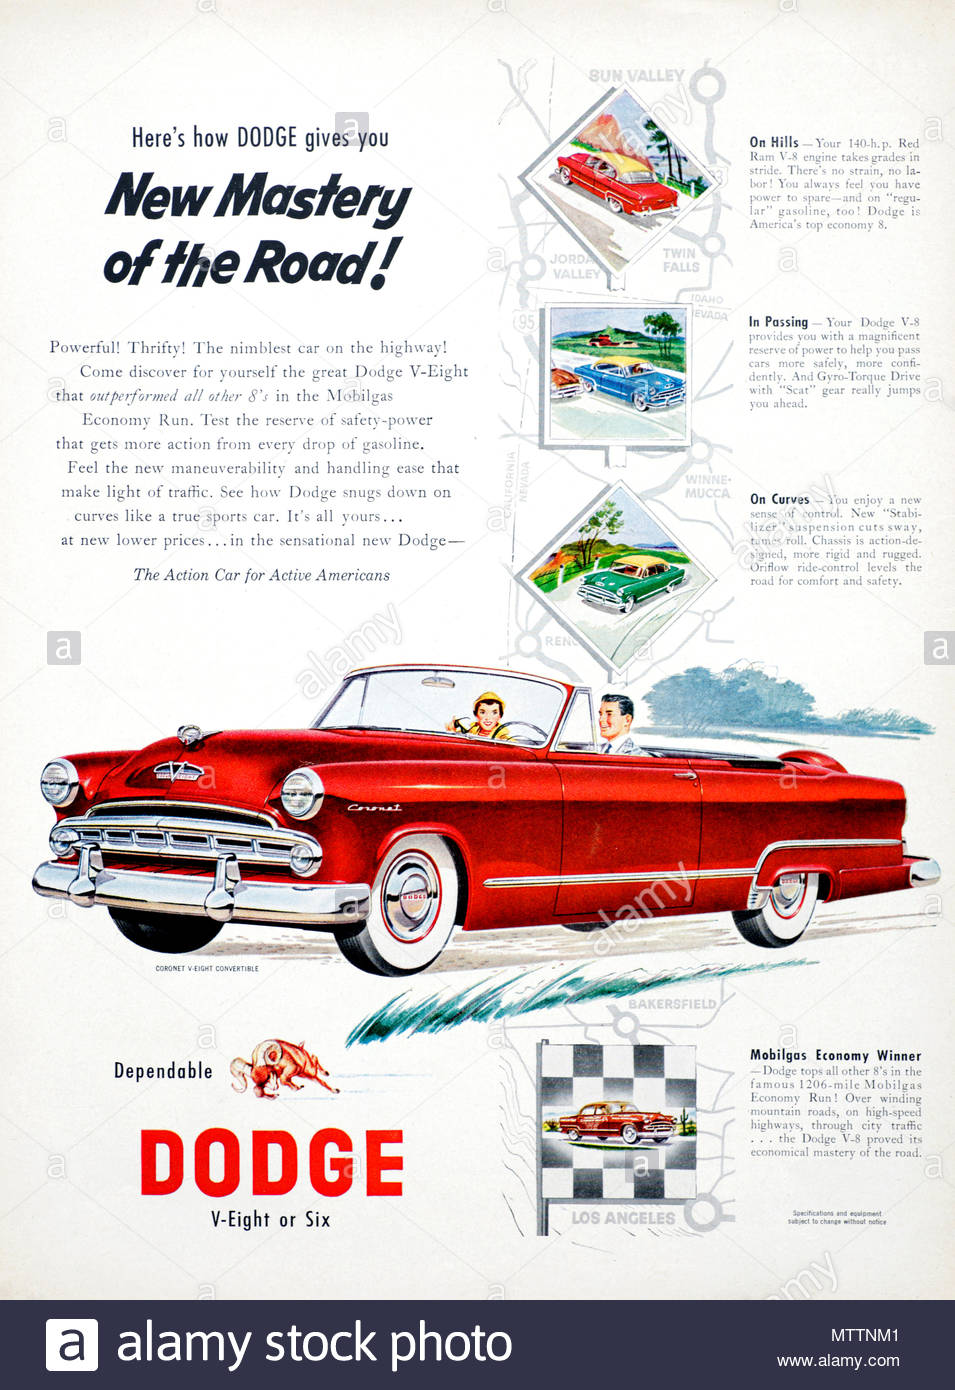 Vintage Advertising For The Dodge Coronet Car 1953 Stock Photo